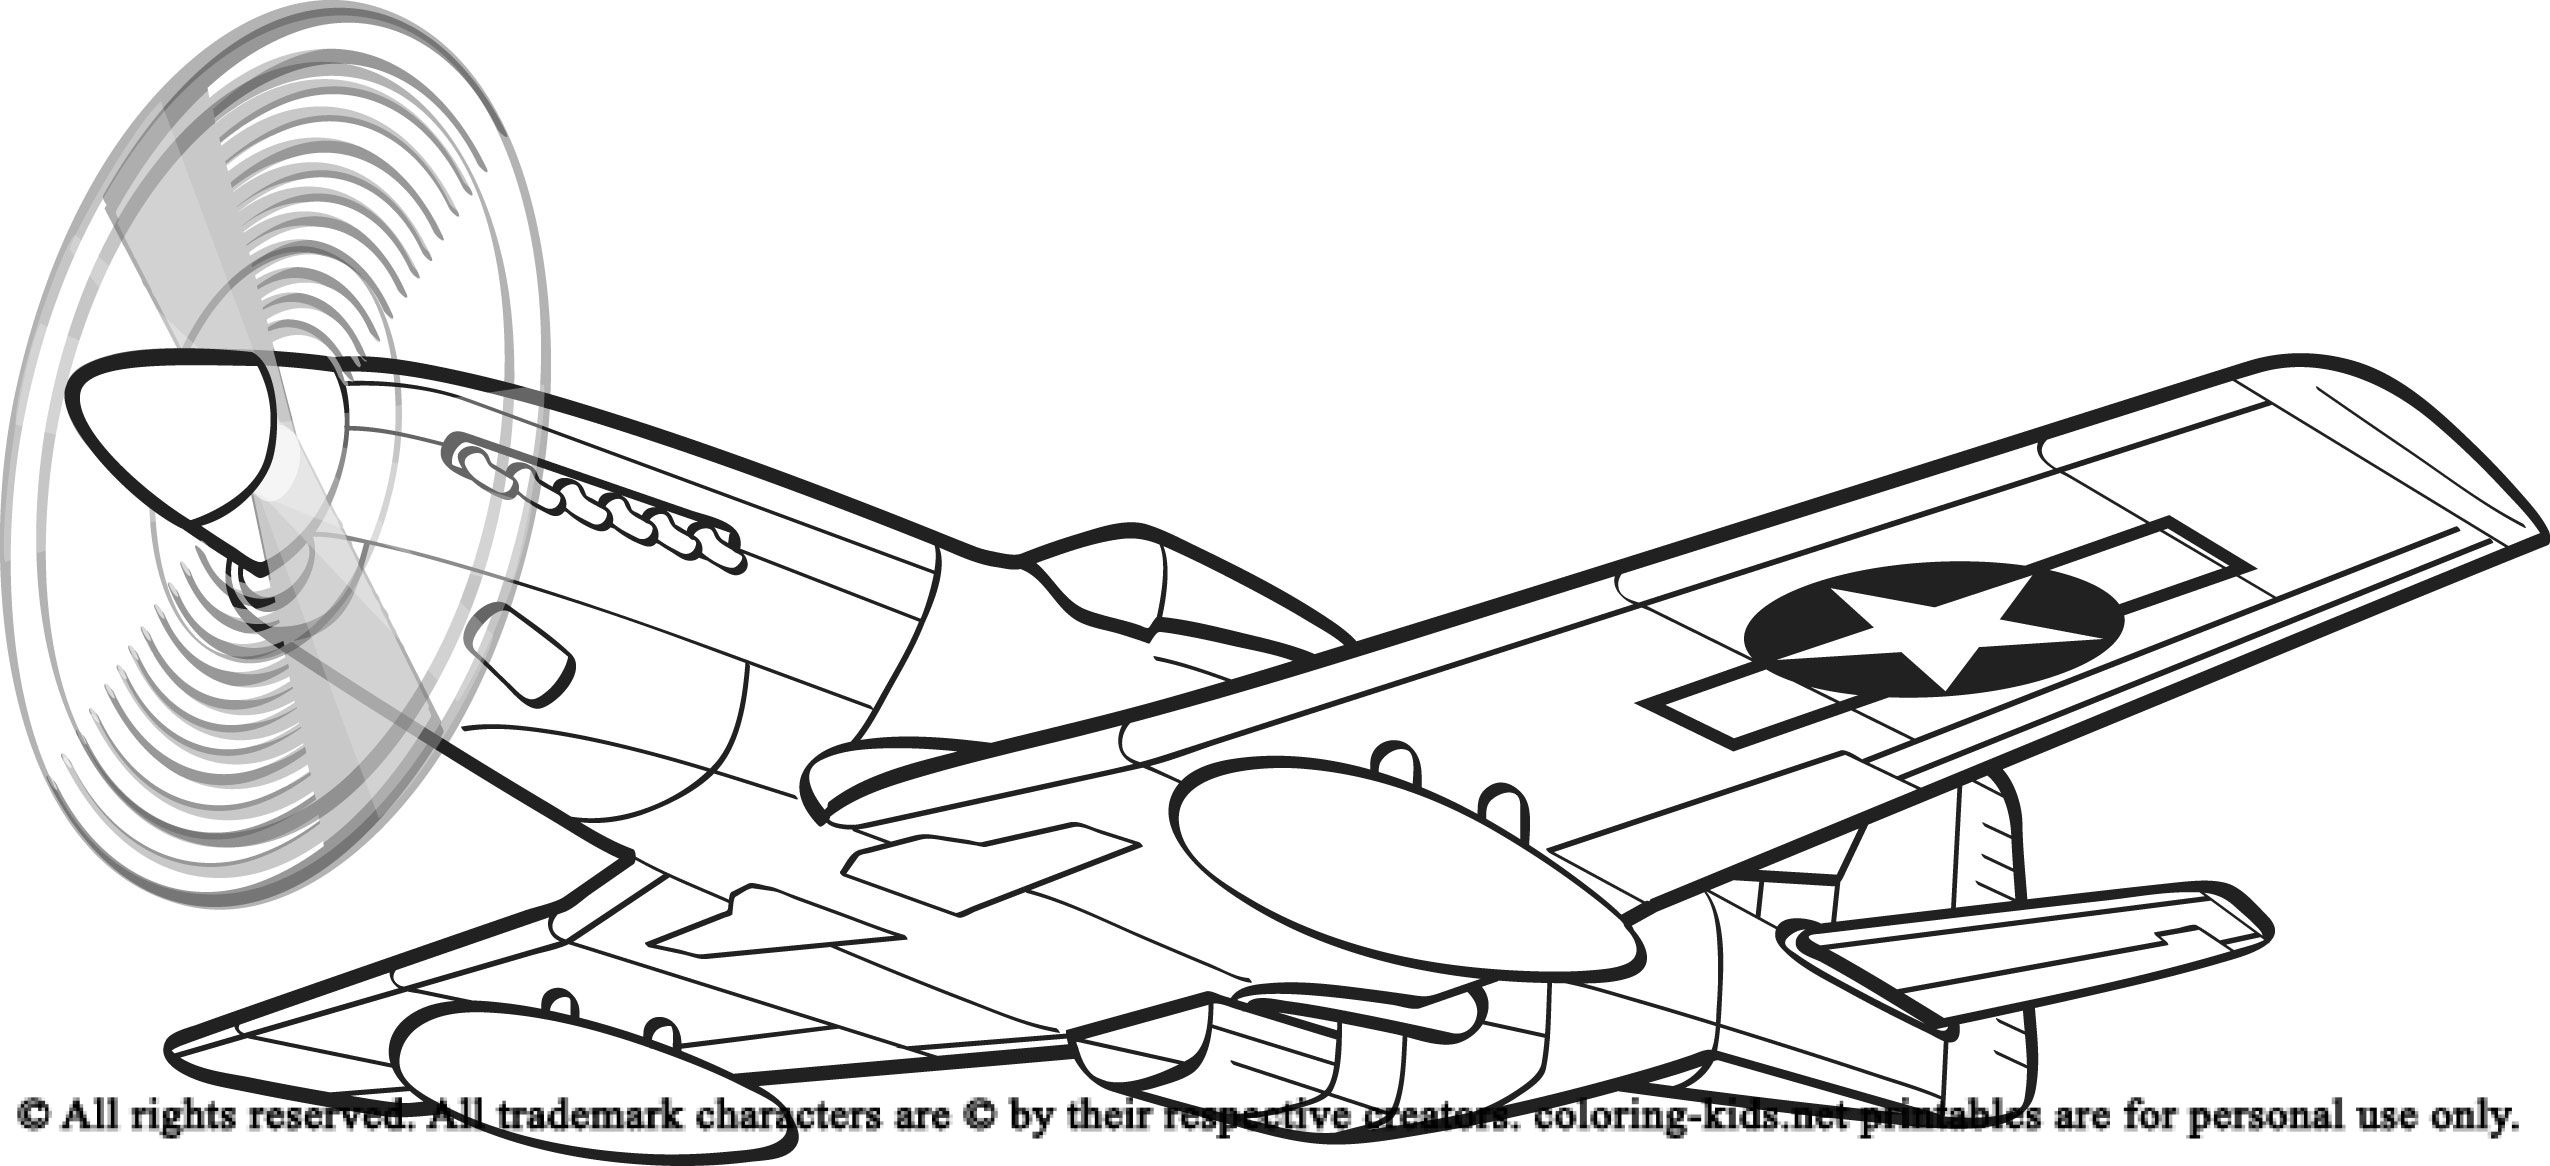 Airplane With A Beautiful Glass | Airplanes Coloring Pages | Pinterest